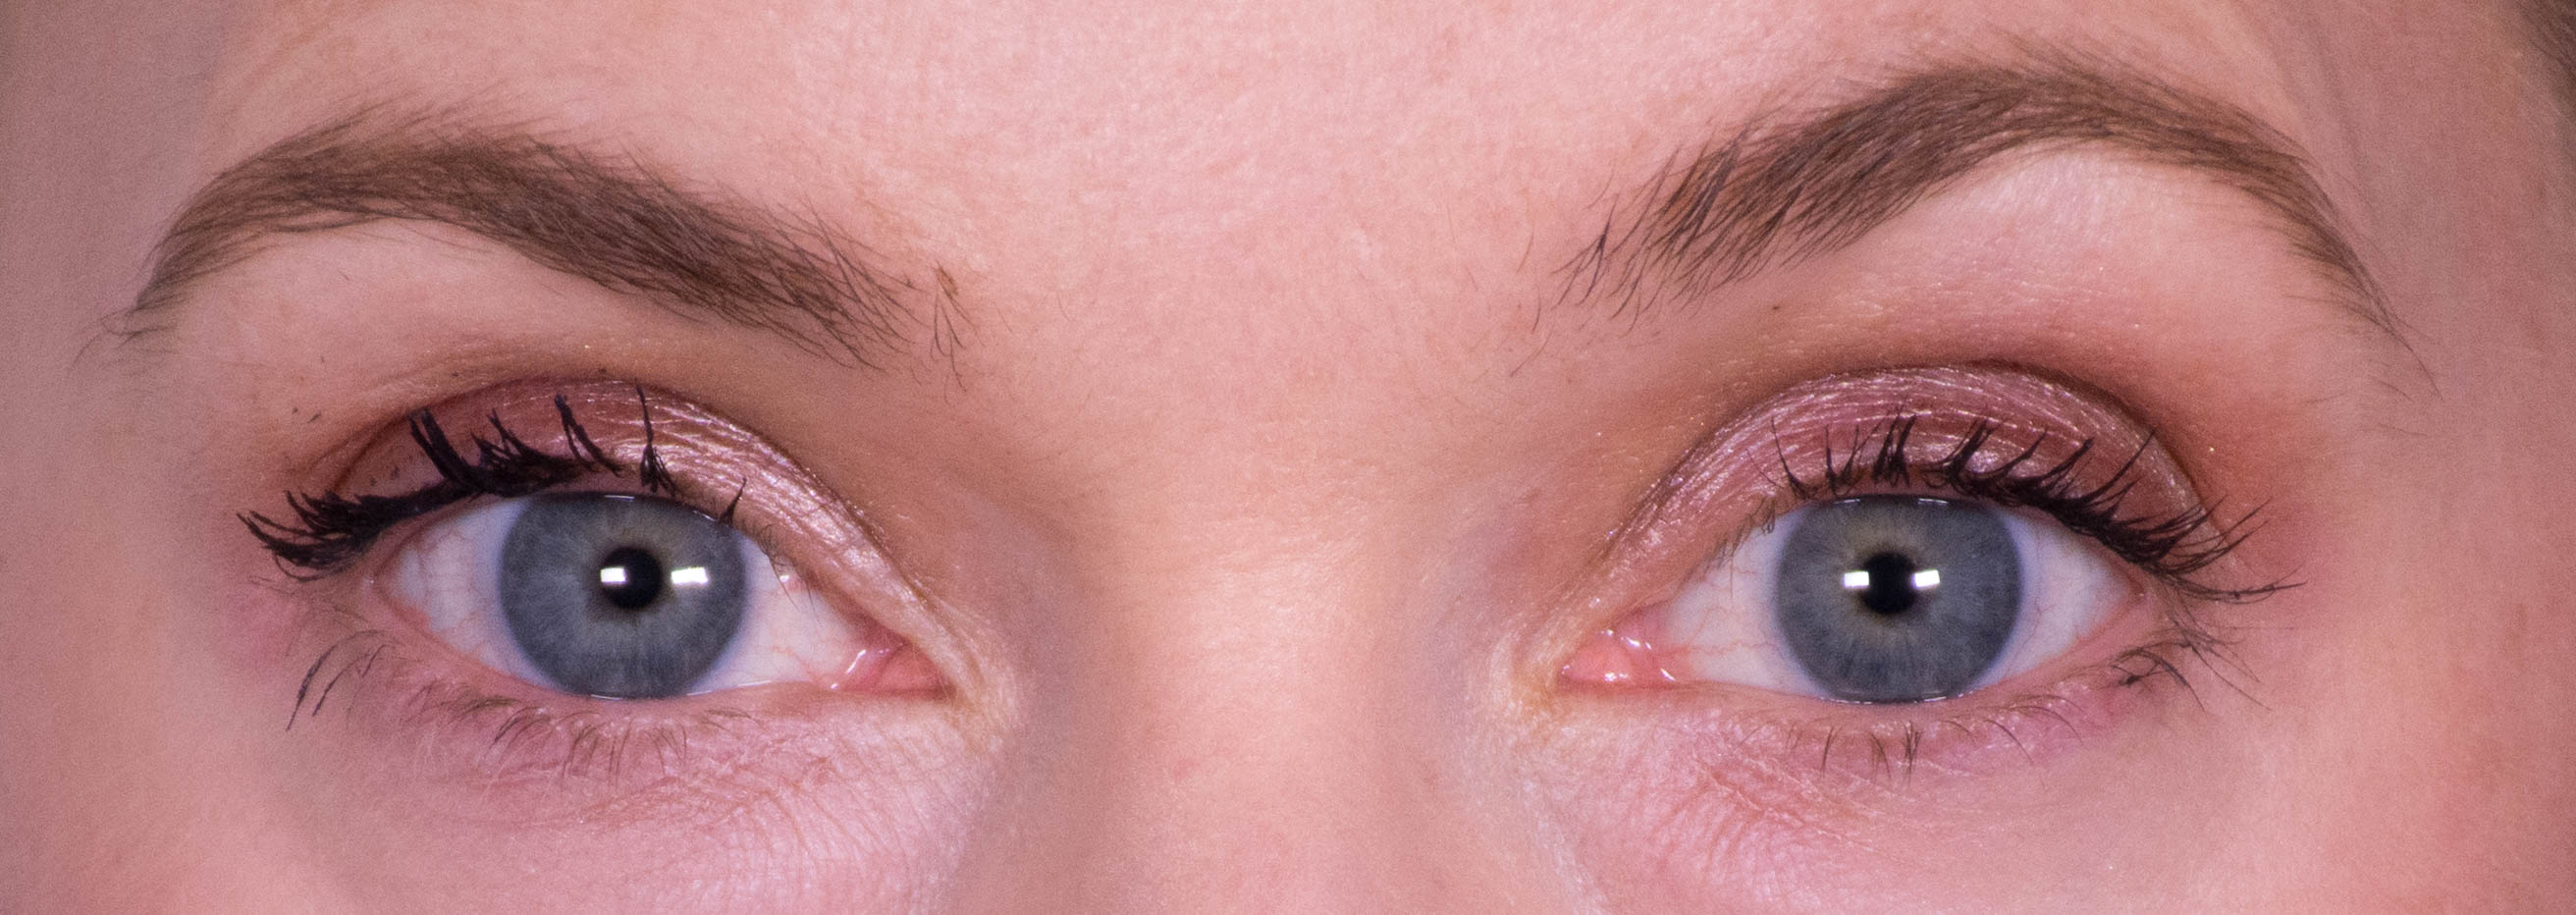 Several coats of Lancome Definicils on lashes